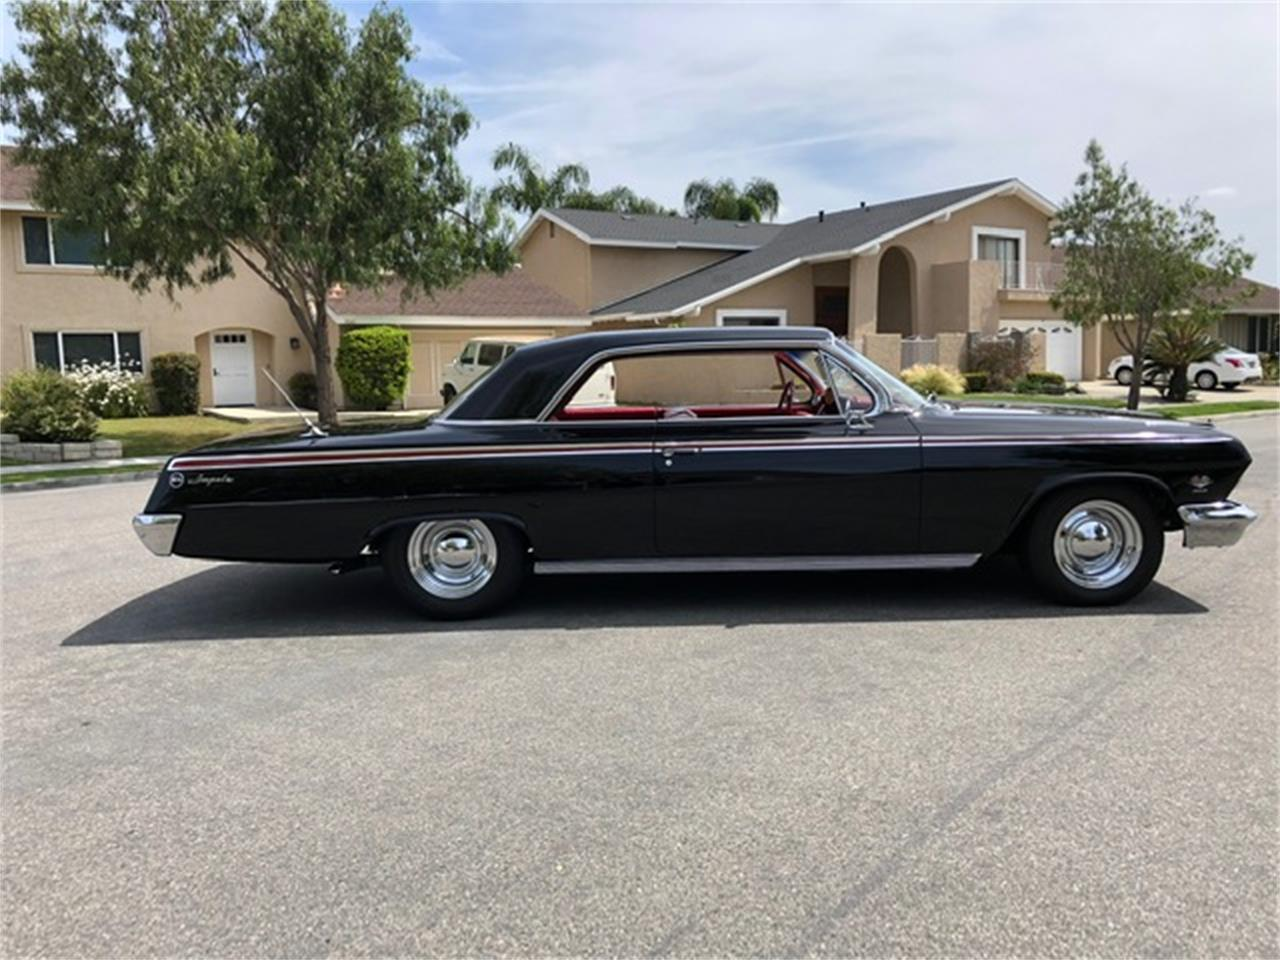 Large Picture of Classic '62 Chevrolet Impala - $59,500.00 Offered by Classic Car Marketing, Inc. - Q71N